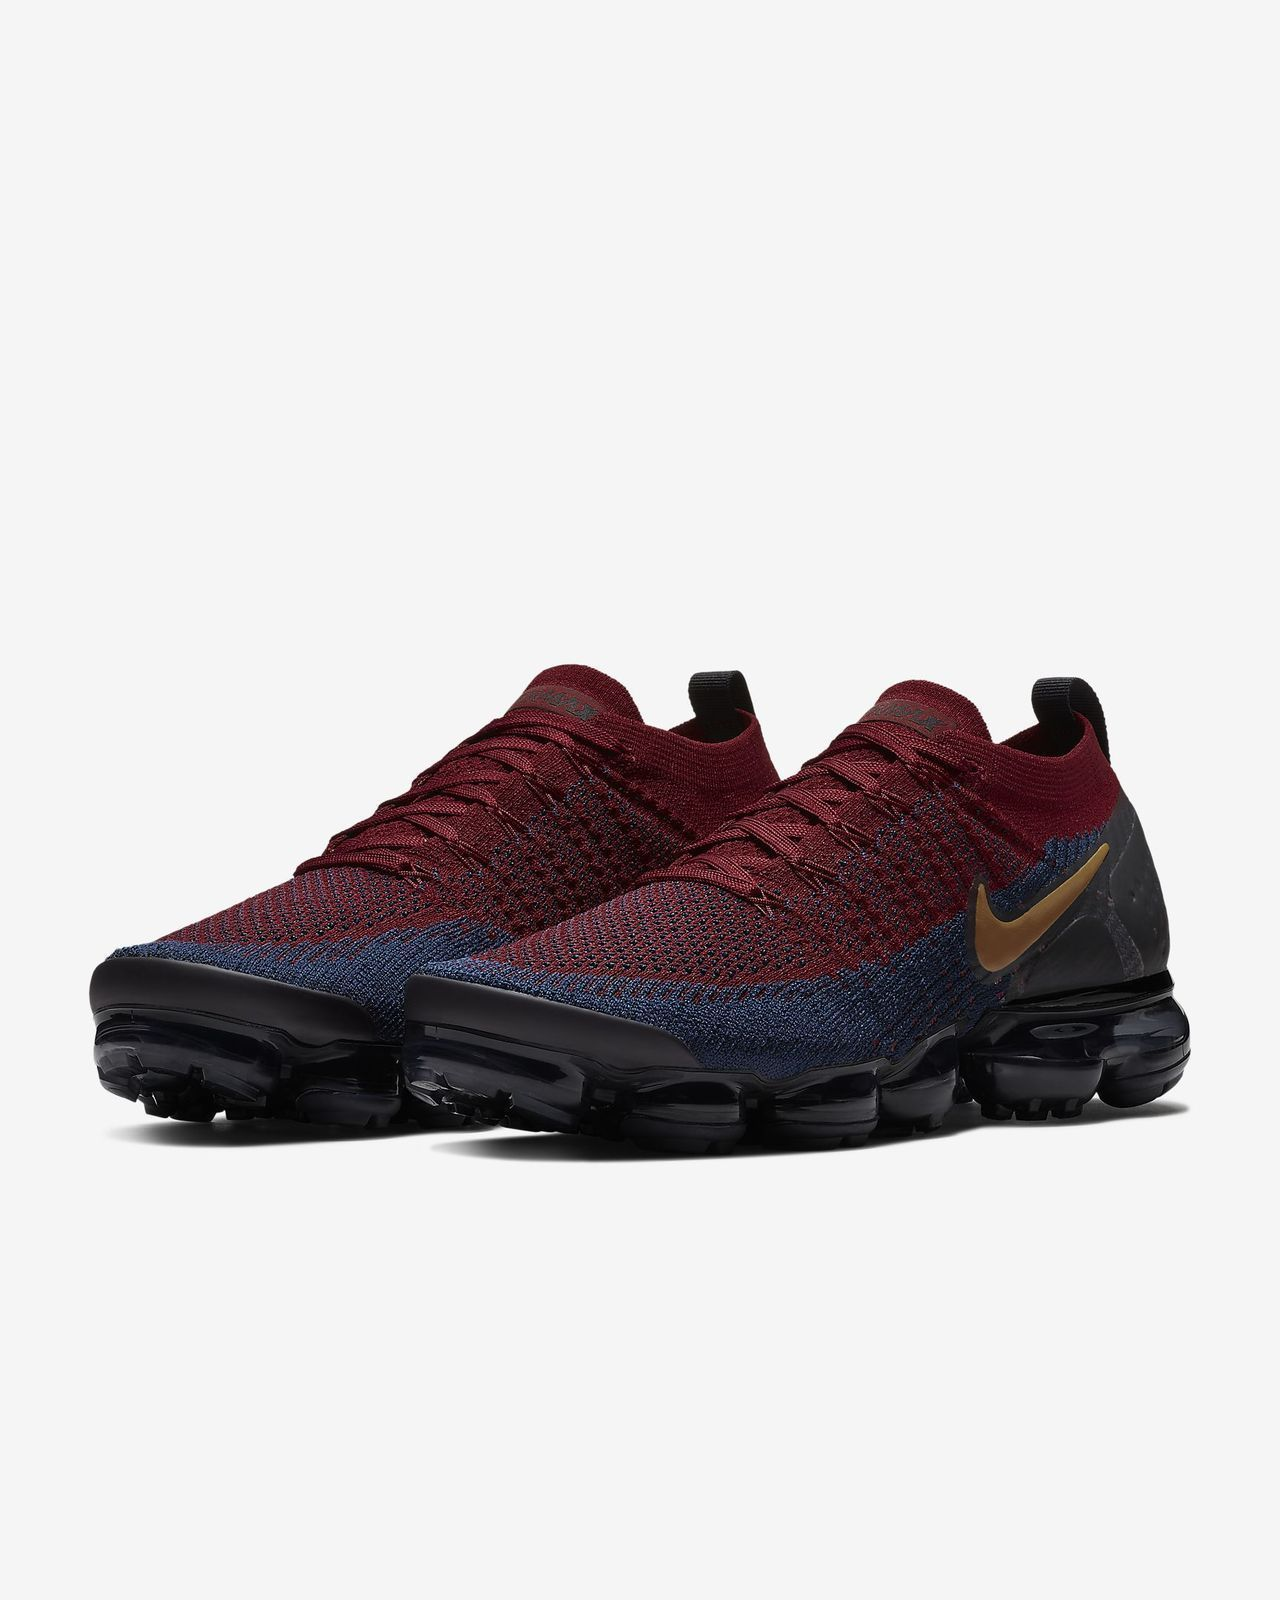 3c39d55326 Ron Holt on | Running Shoes | Shoes, Nike air vapormax, Nike Shoes